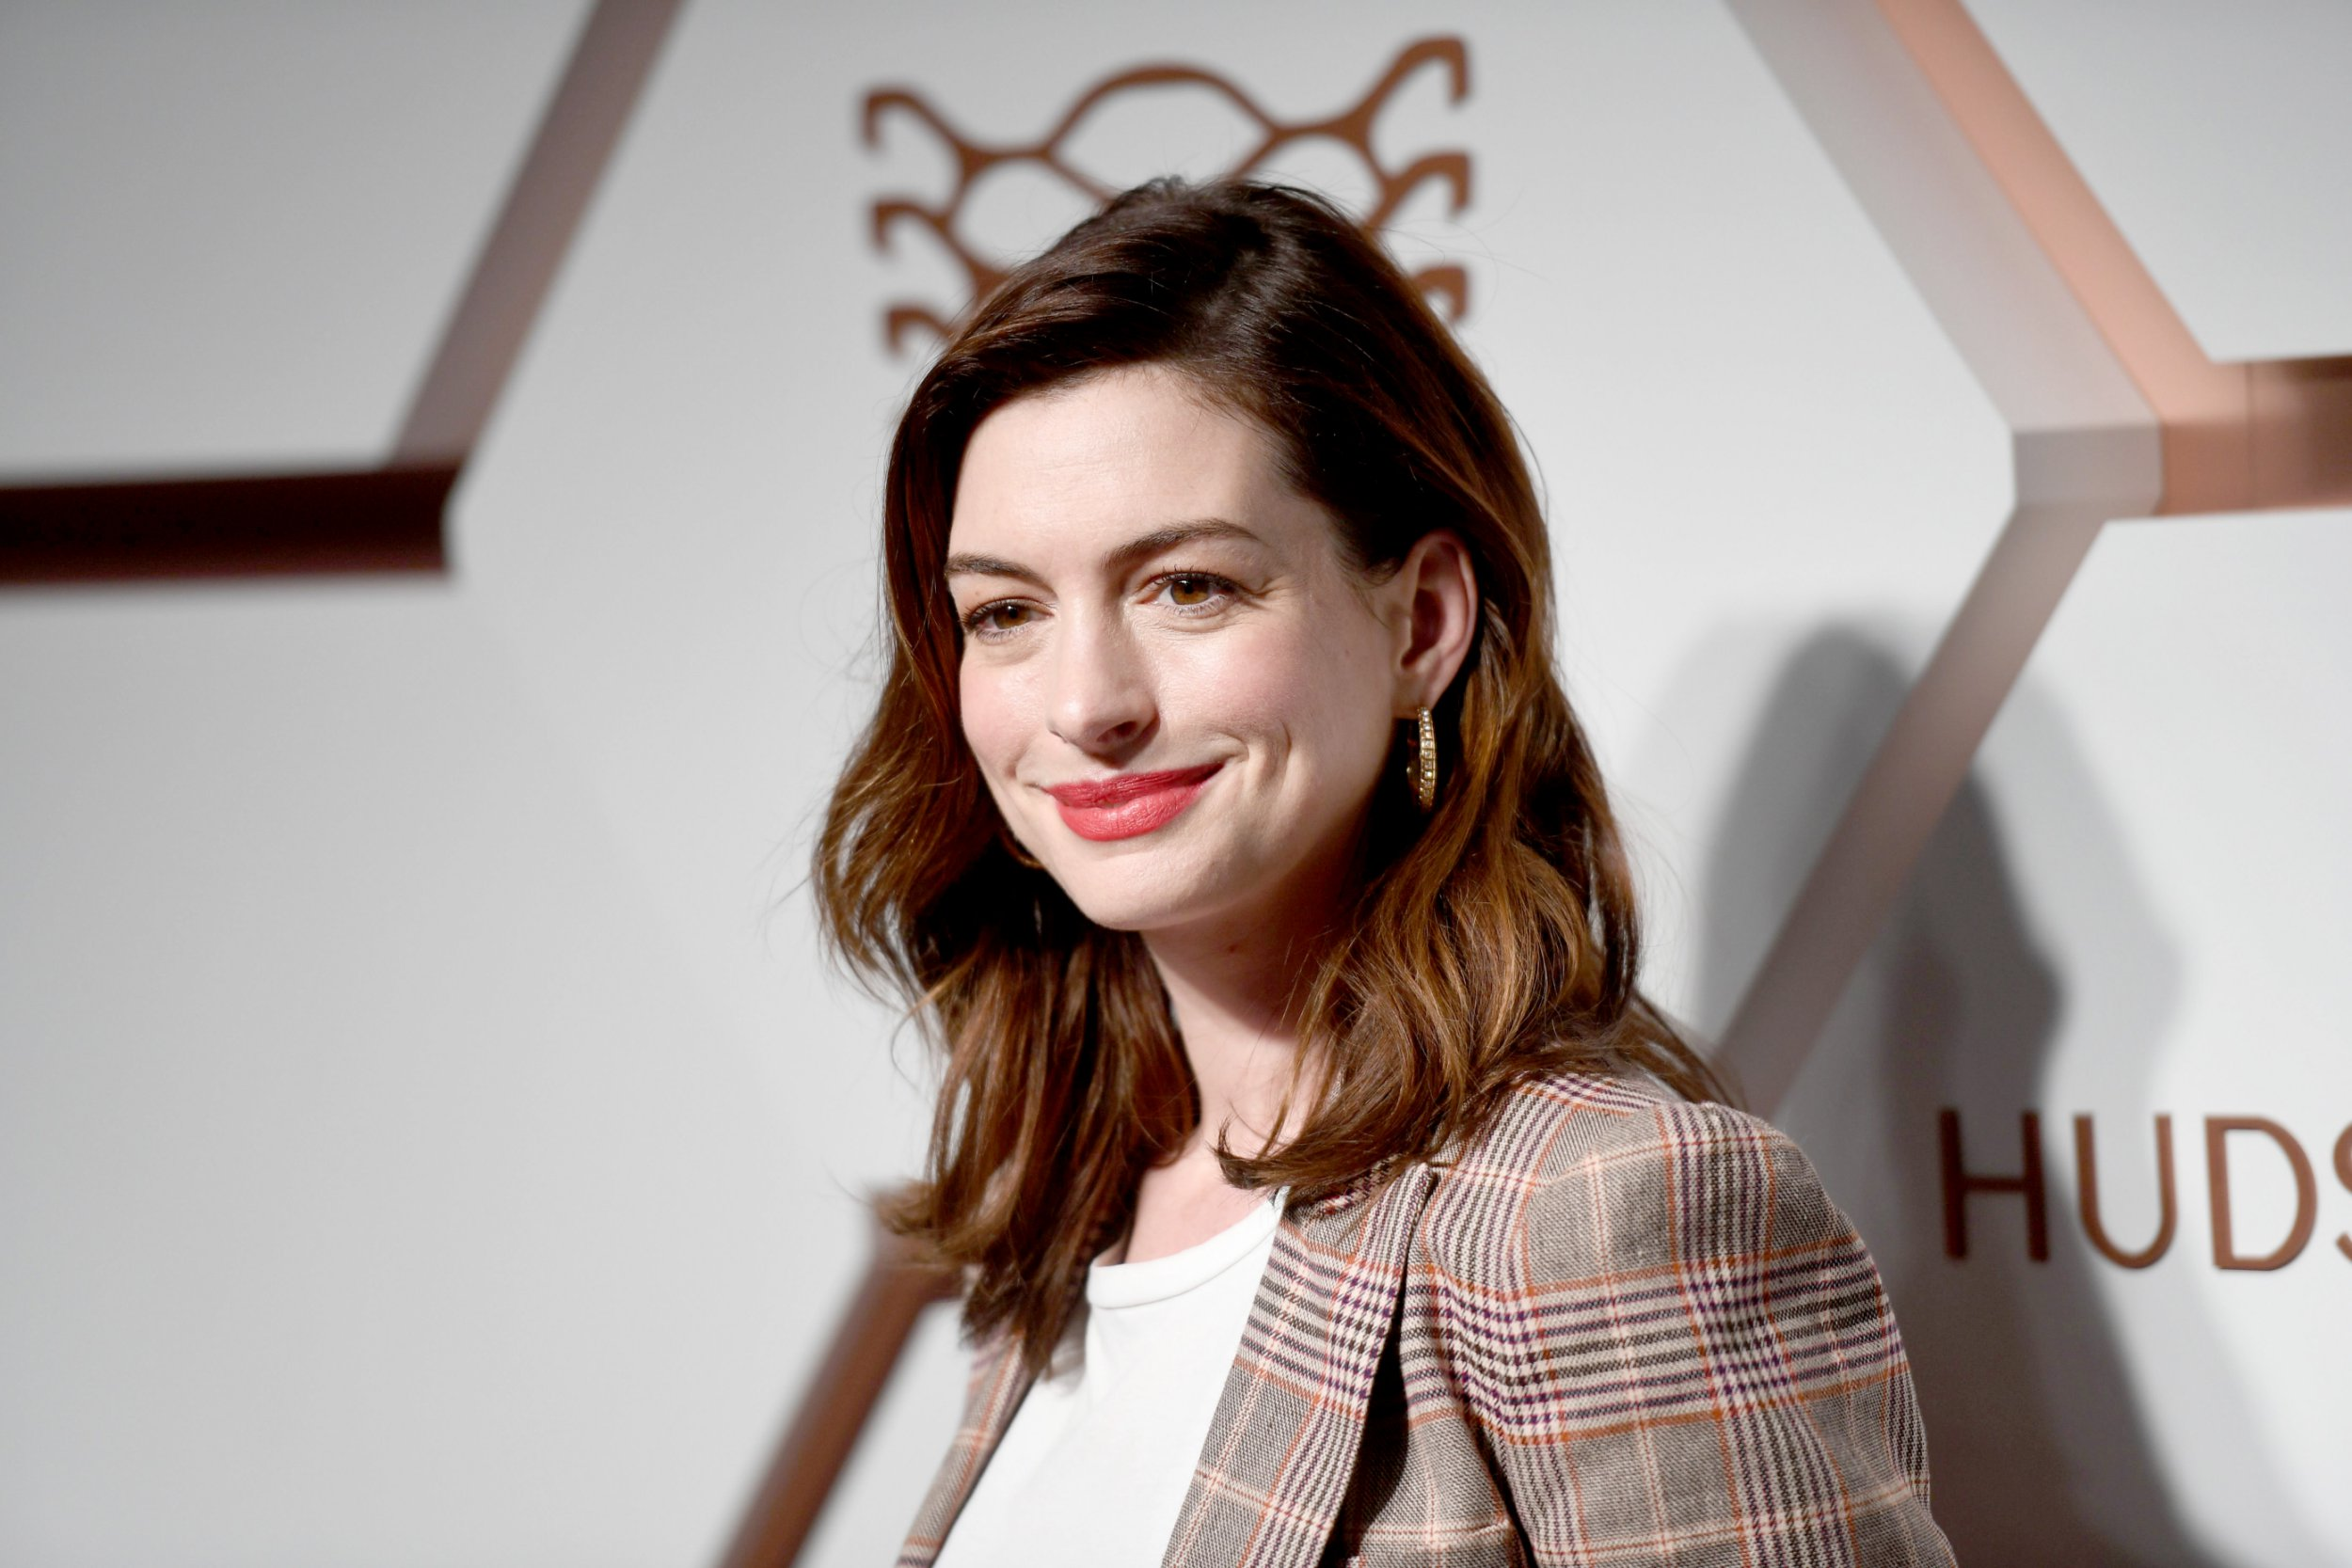 Anne Hathaway in New York in March 2019